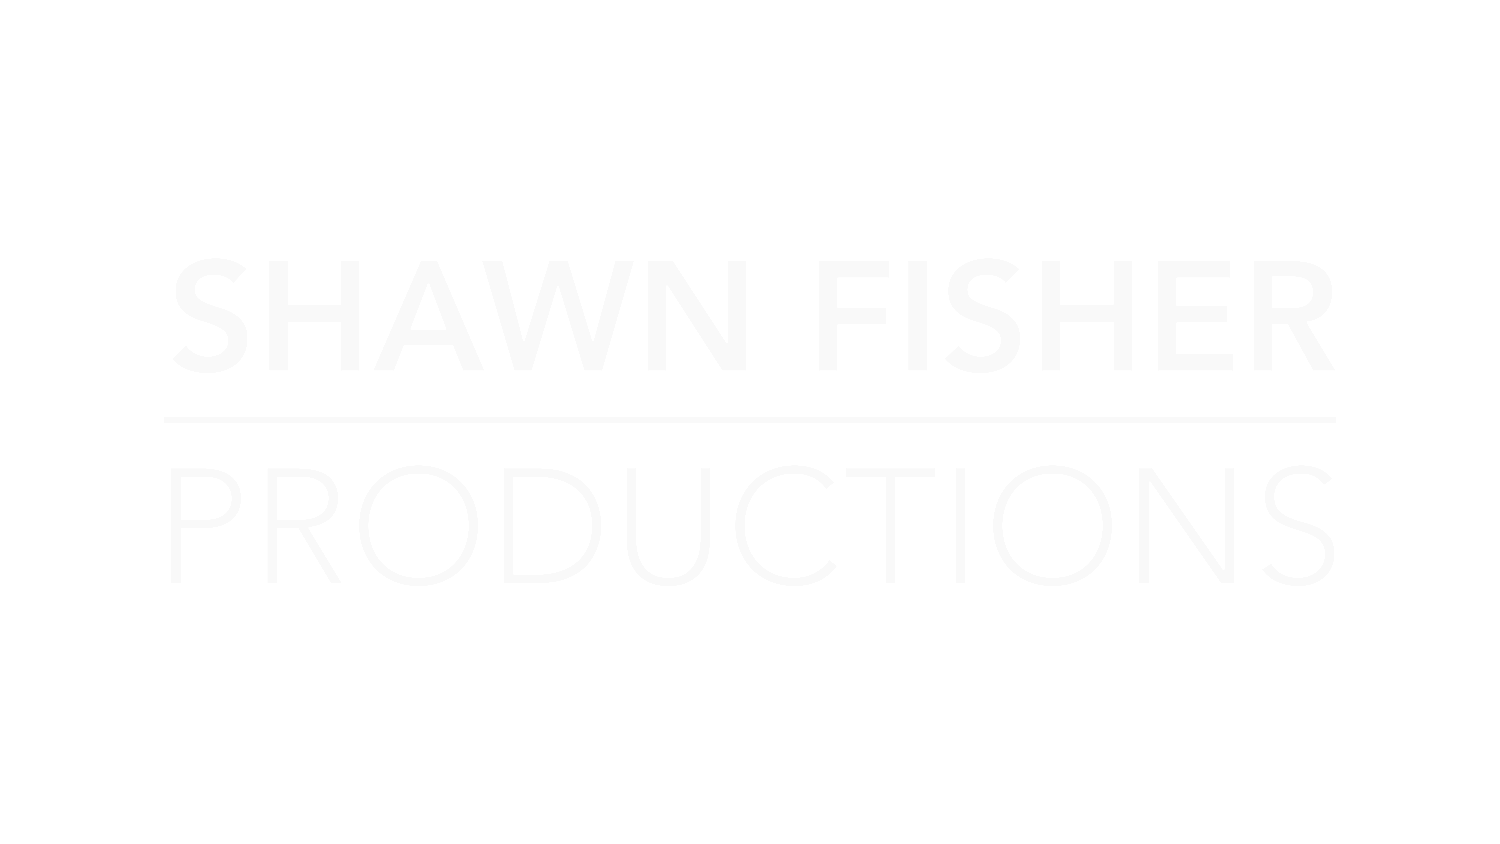 Shawn Fisher Productions